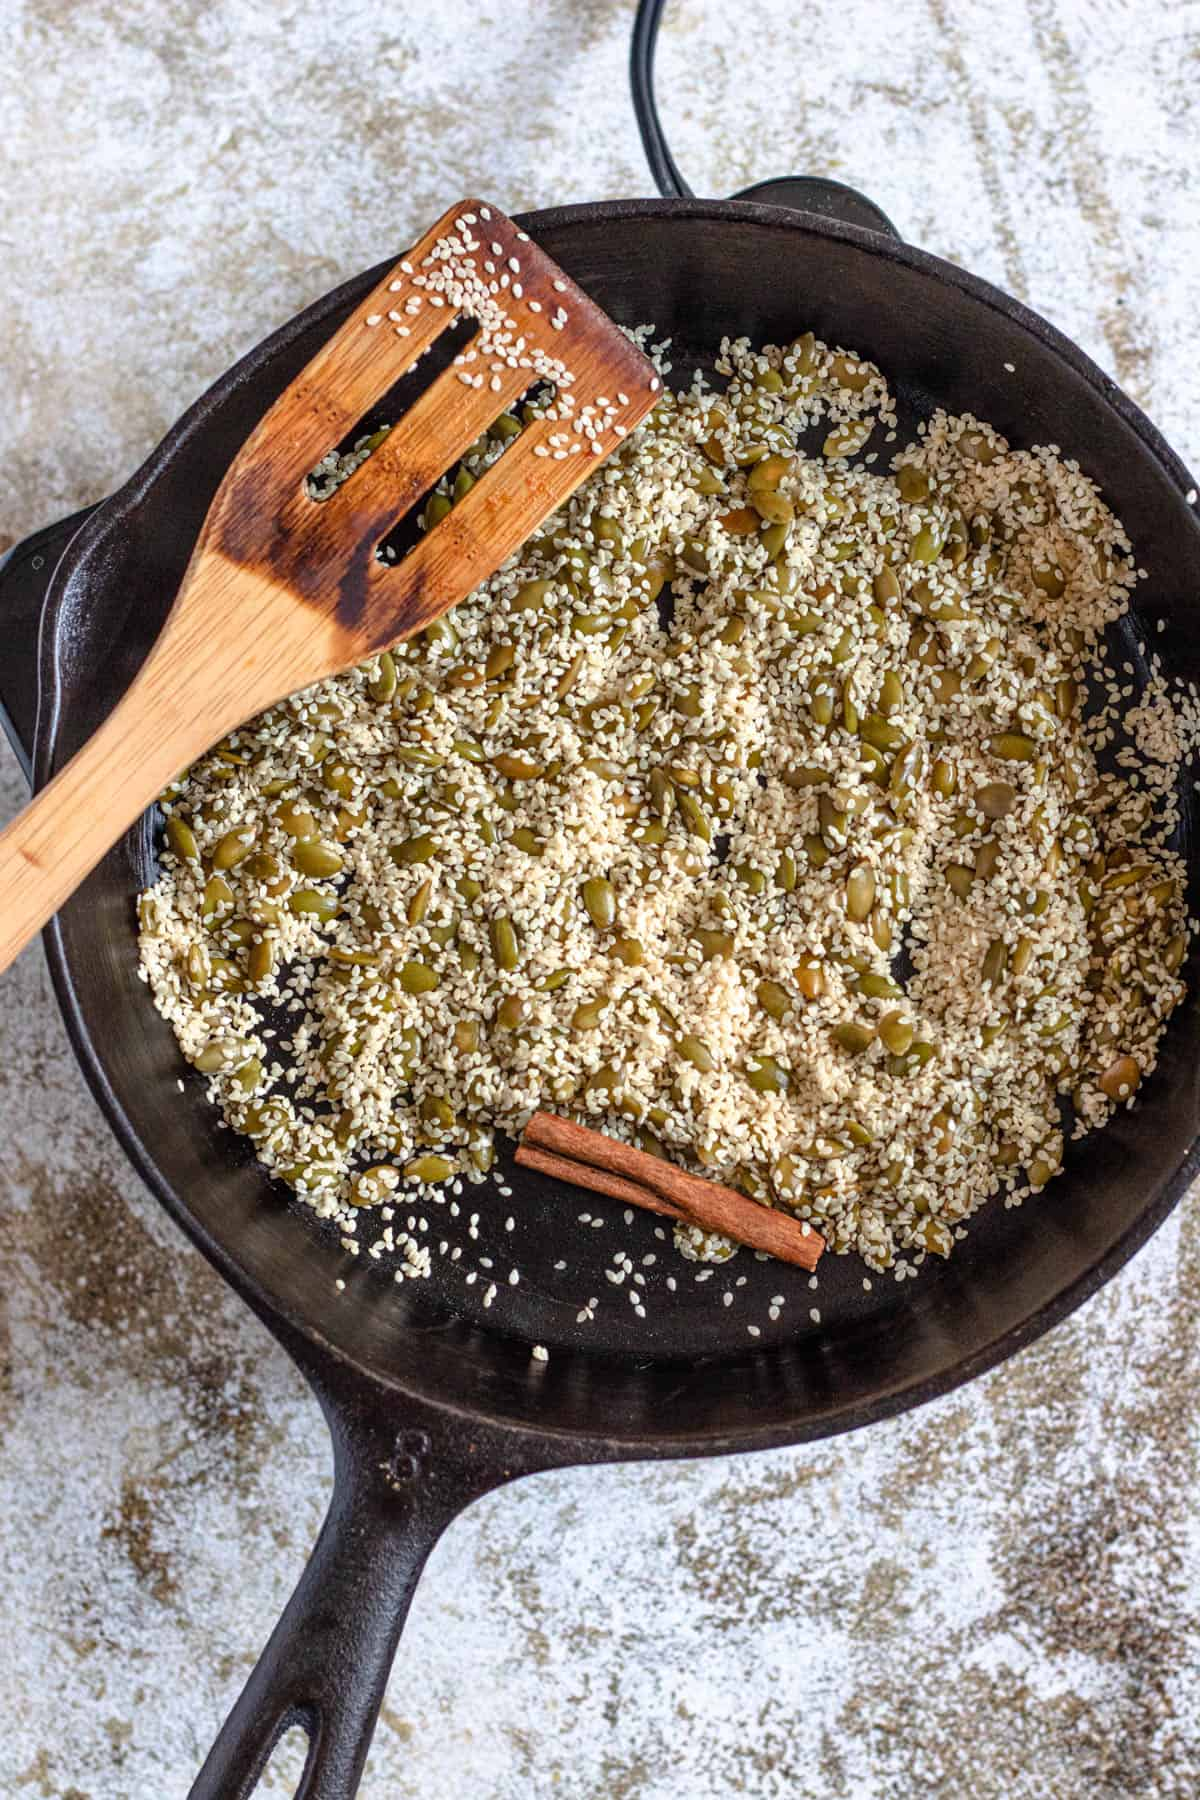 Toasted sesame seeds, pumkin seeds, and cinnamon in a skillet